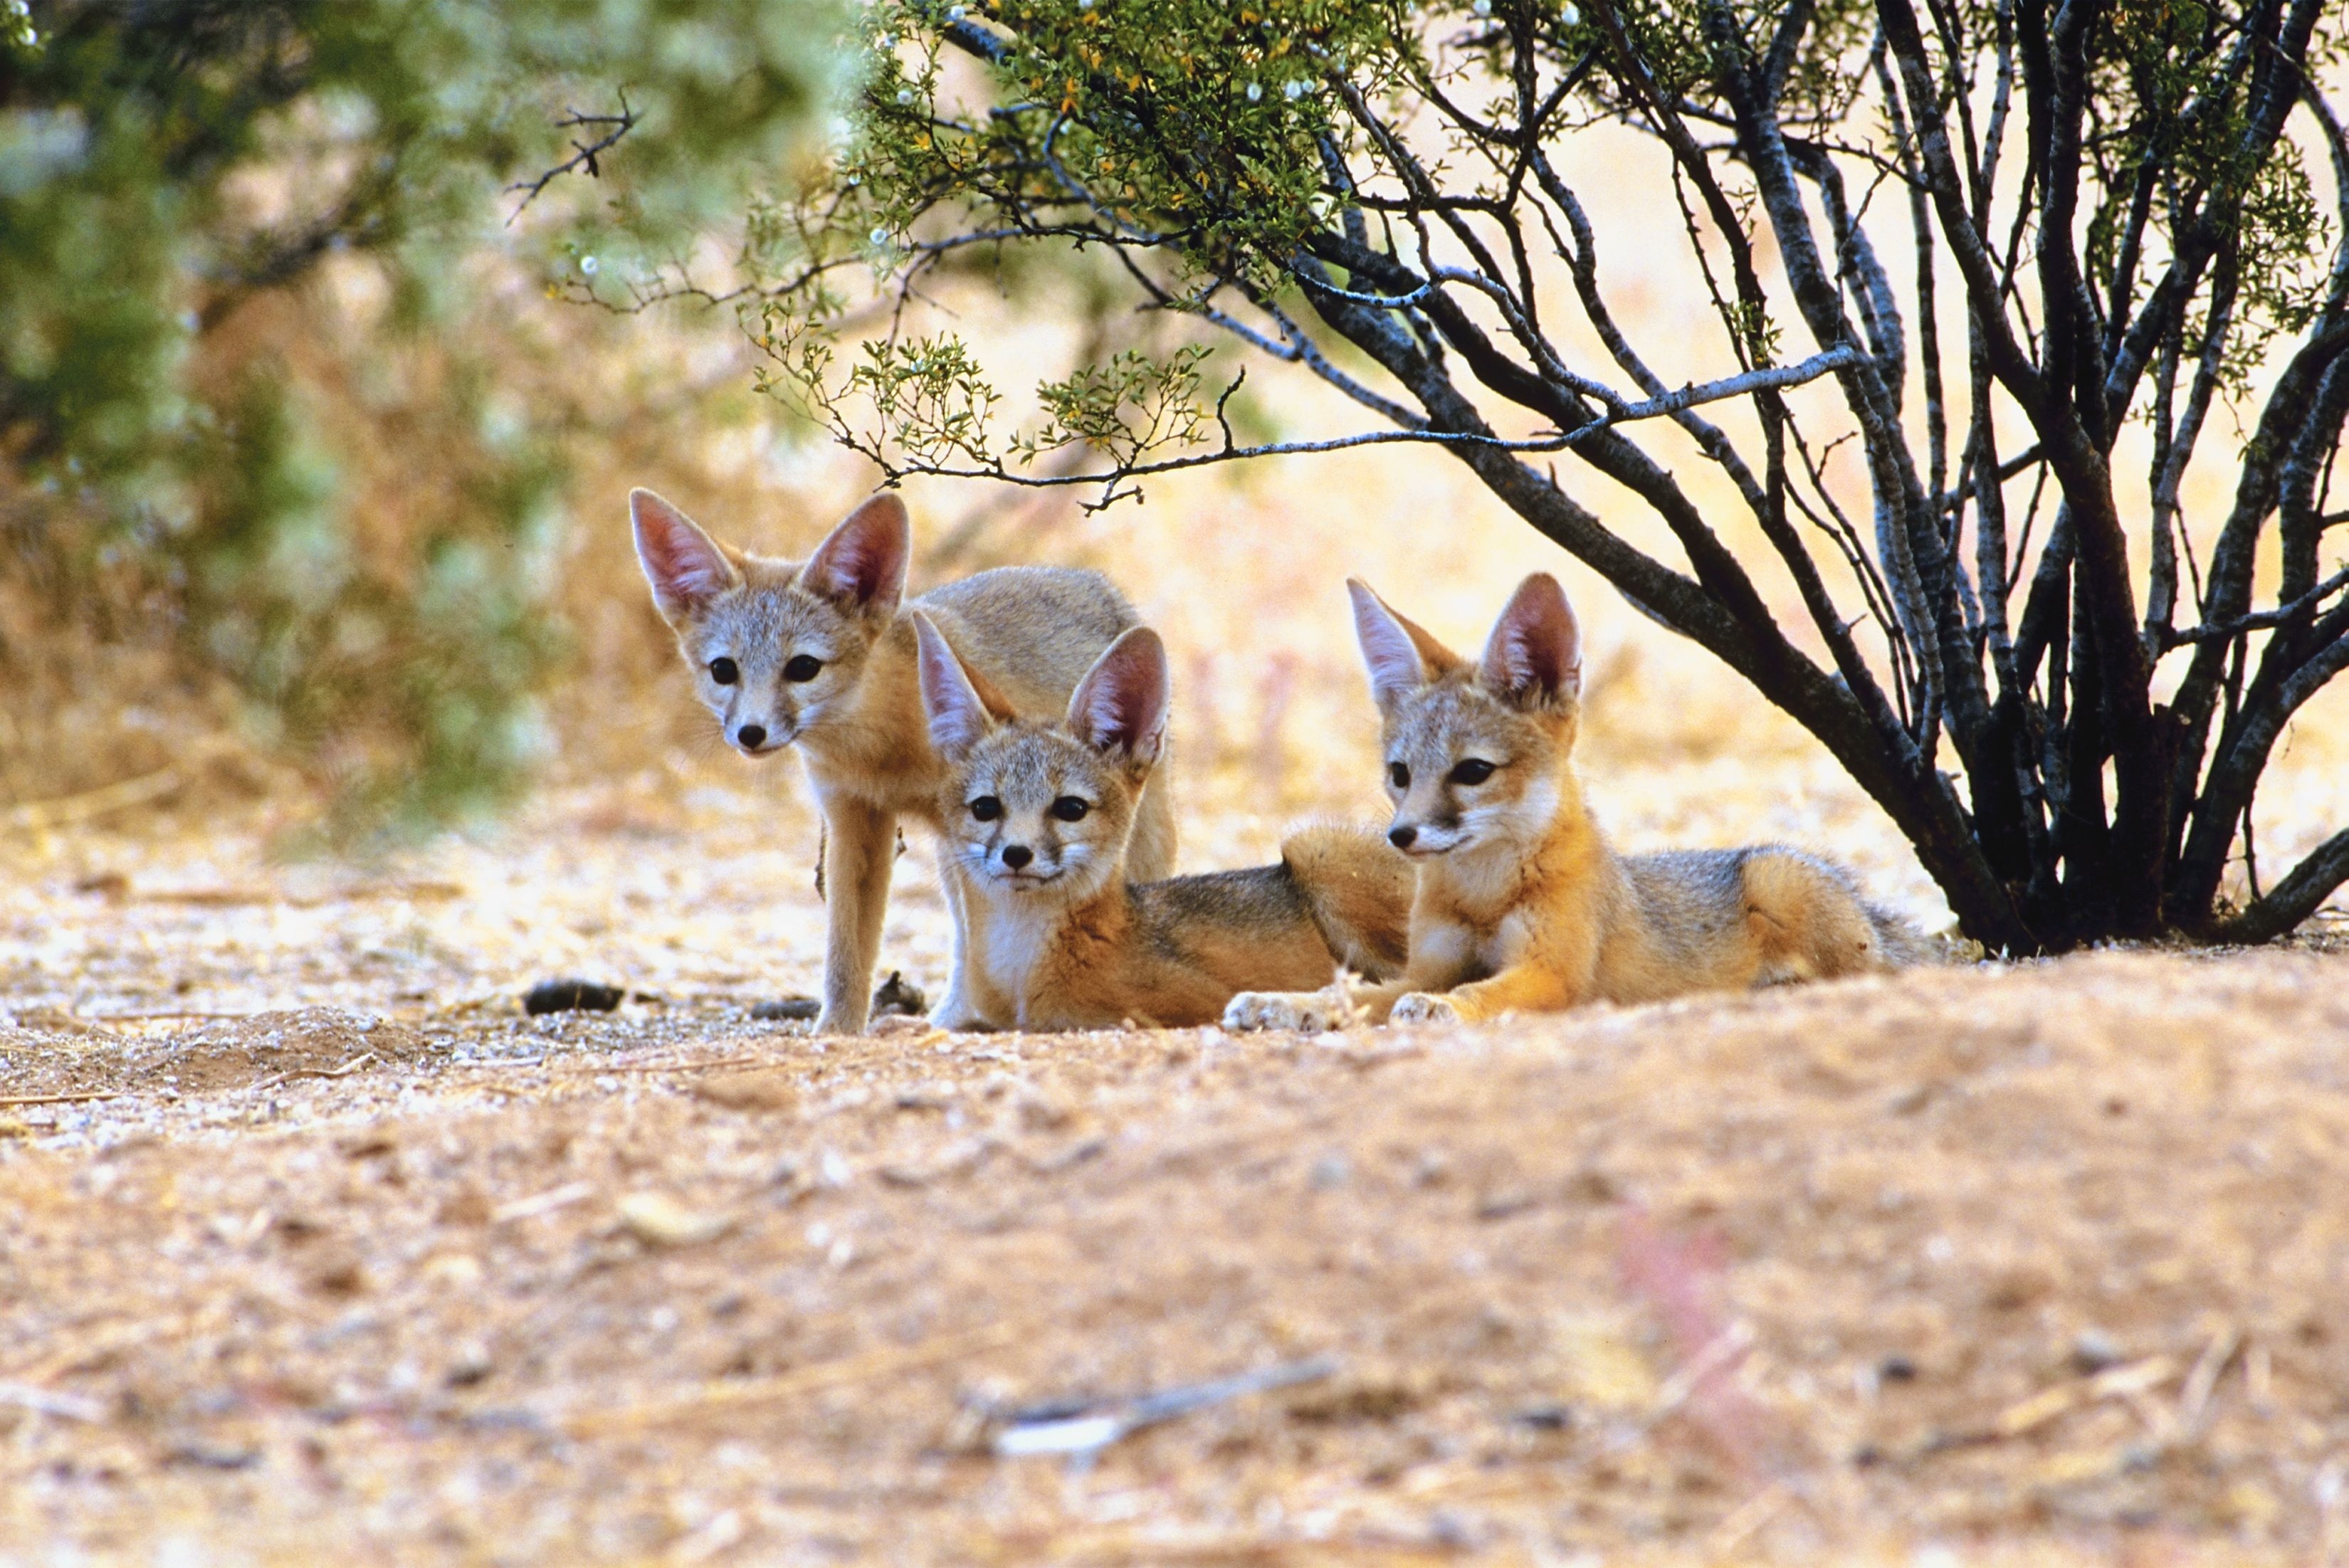 Animals That Live in the Hot & Dry Desert